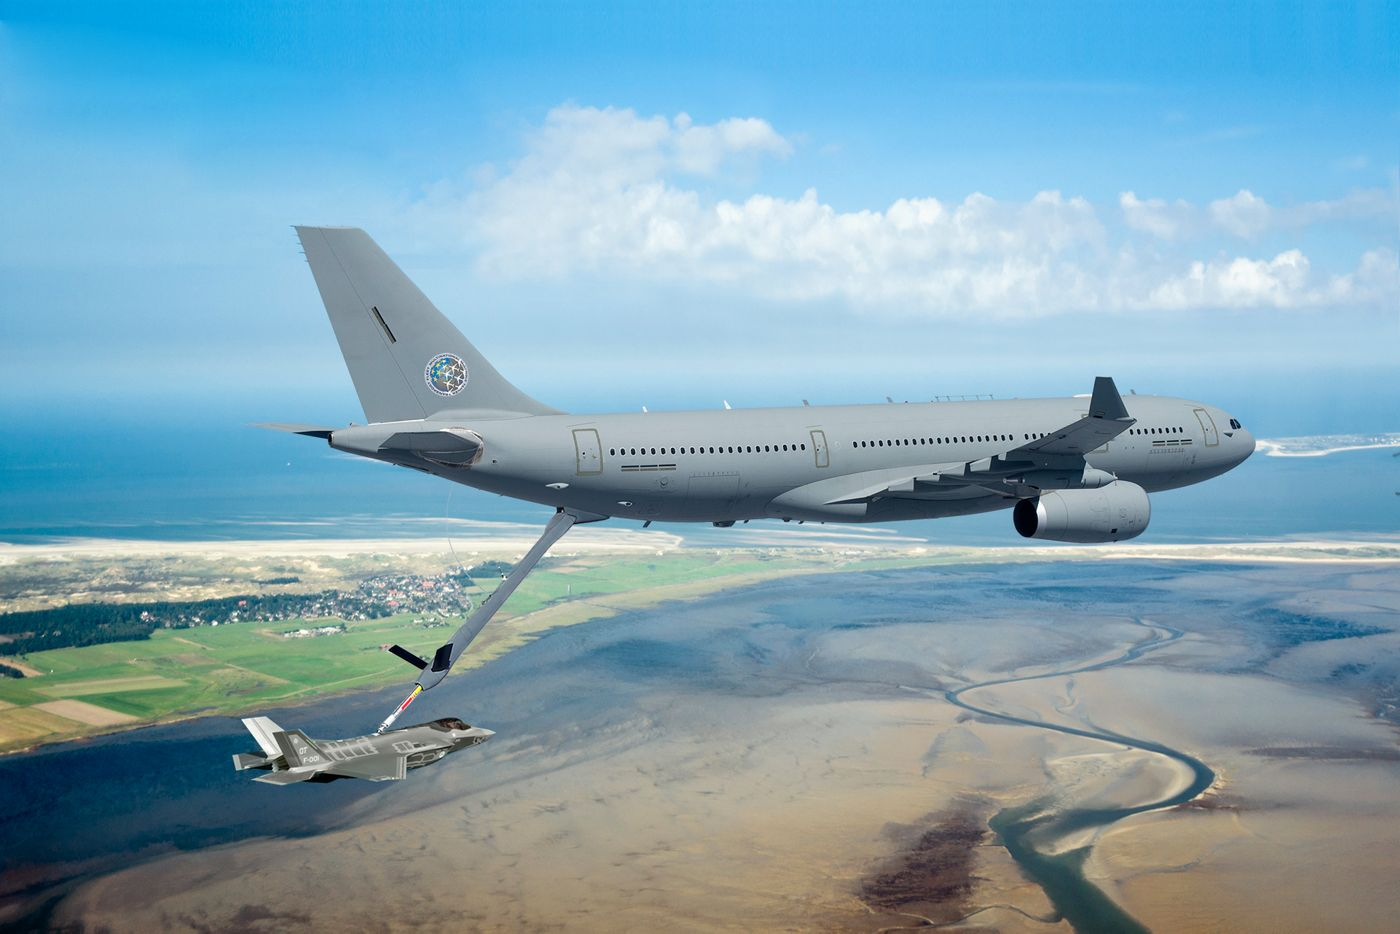 Germany and Norway join pooled fleet of NATO A330 MRTT